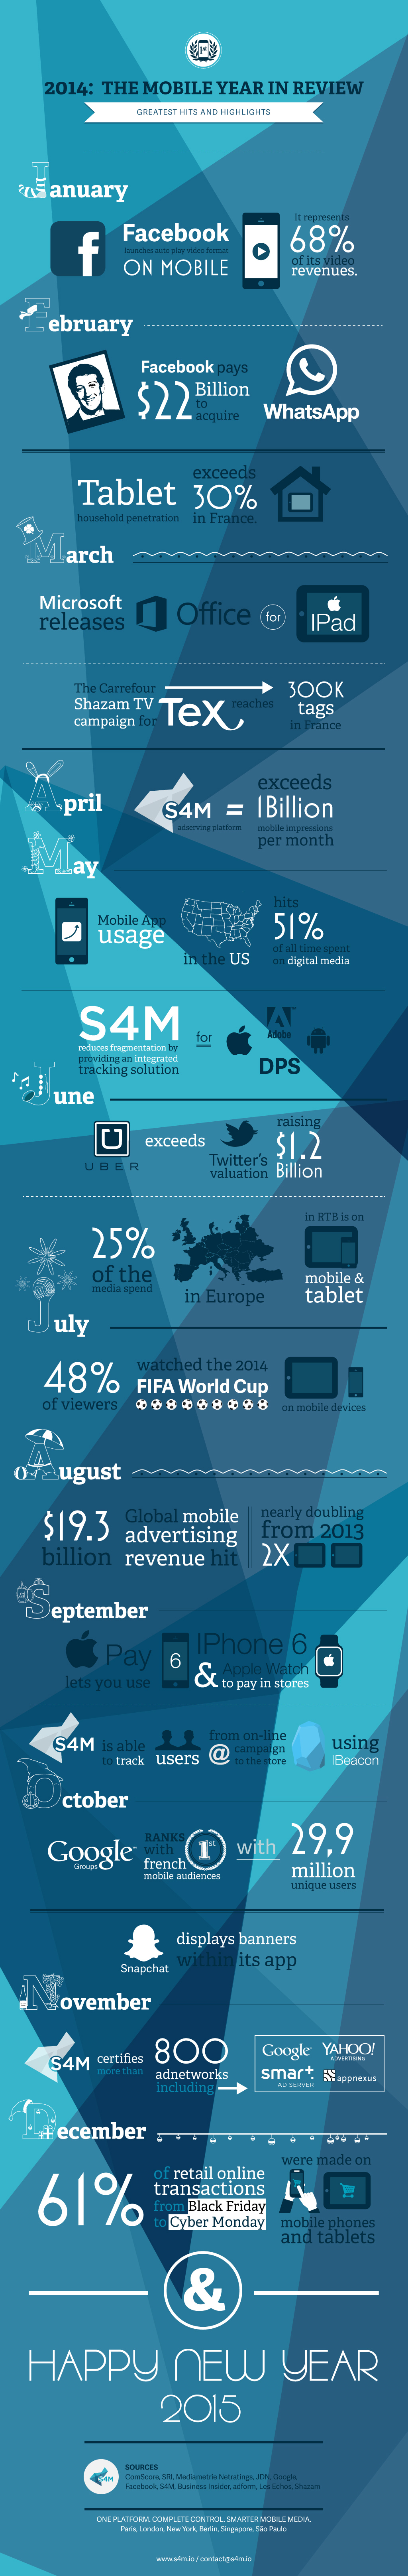 Infographic: The Mobile Year in Review